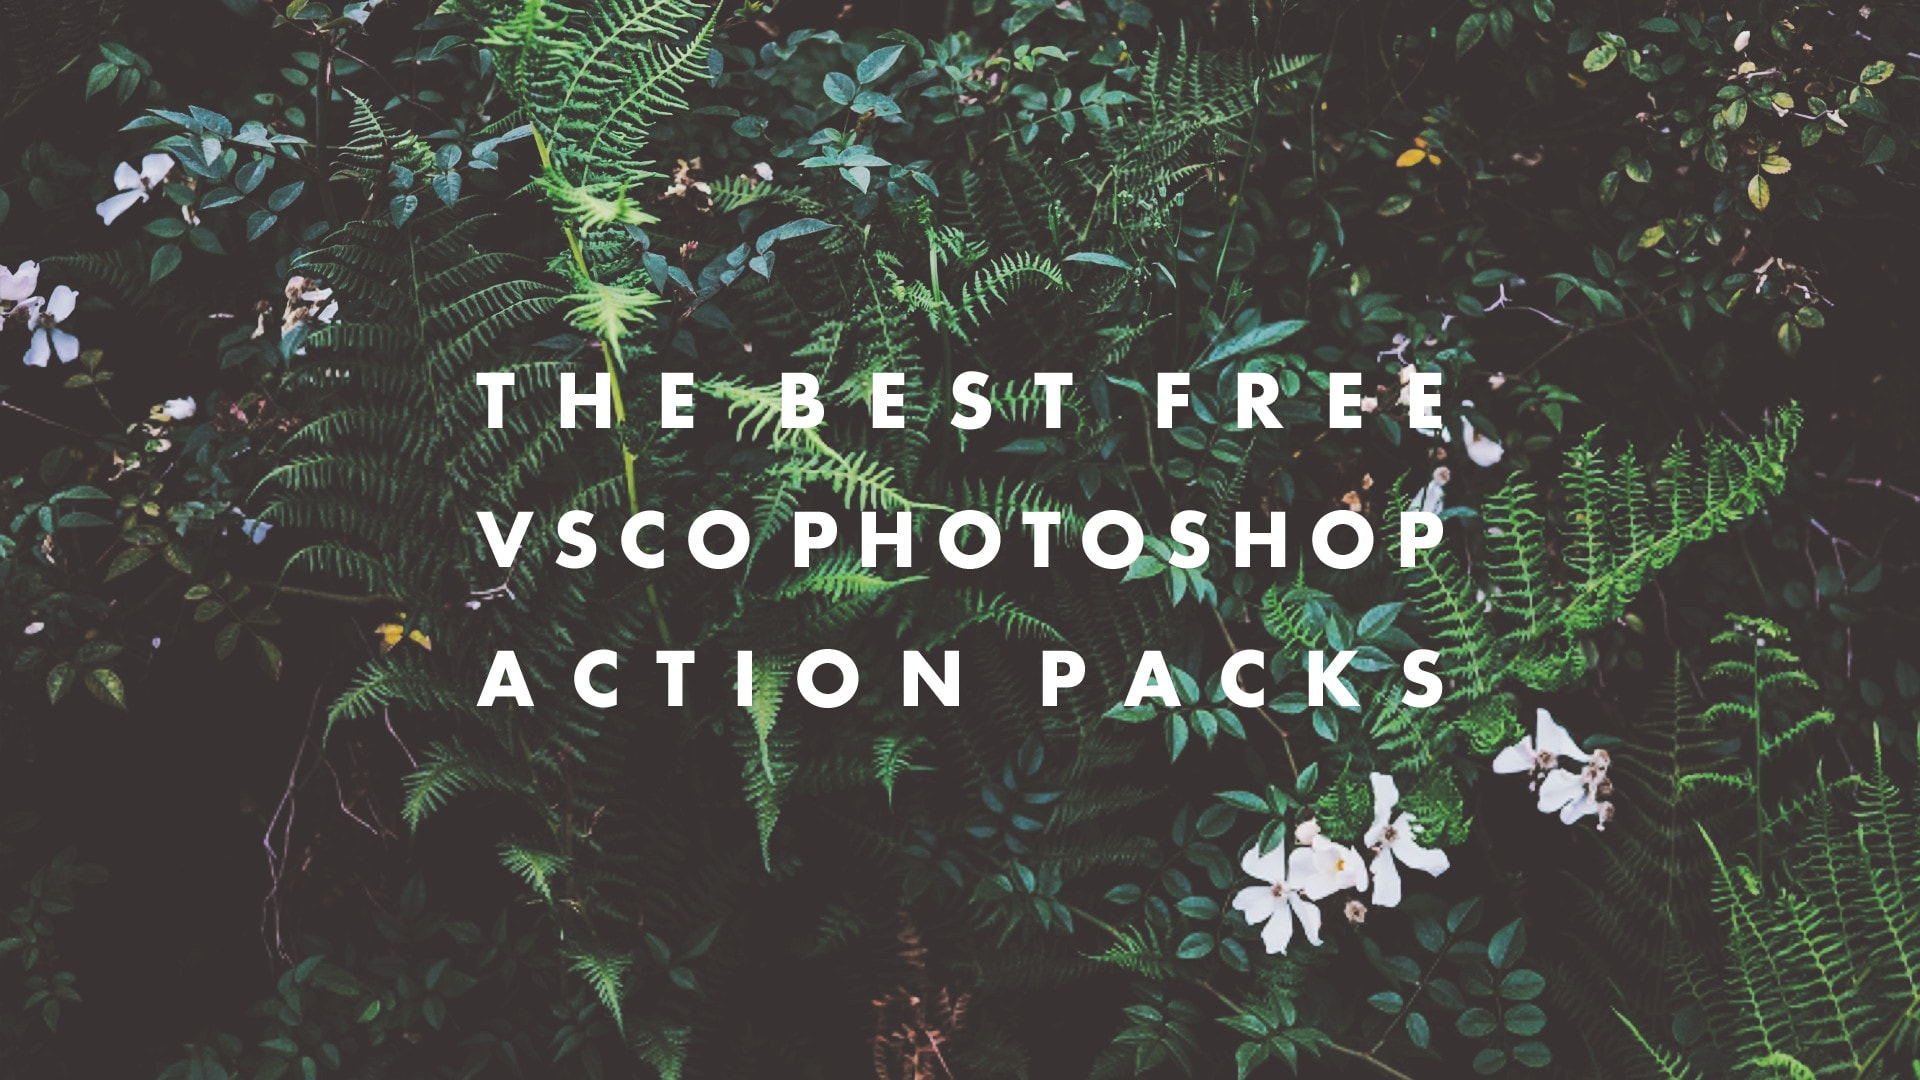 The Best Free VSCO Photoshop Actions